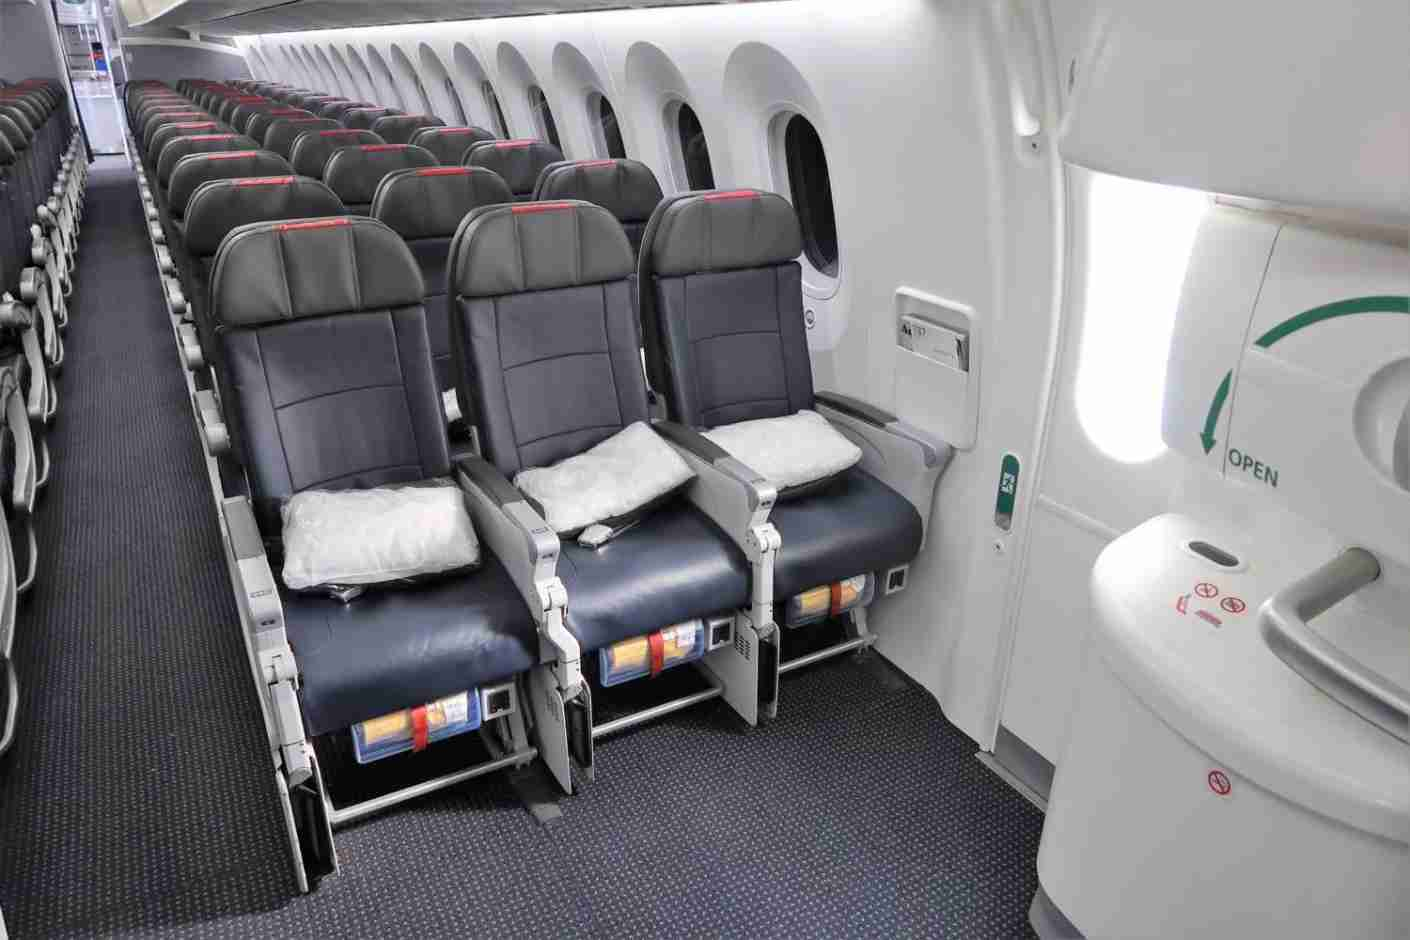 Gold elites will soon have to pay full price for exit row and other MCE seating before check-in.